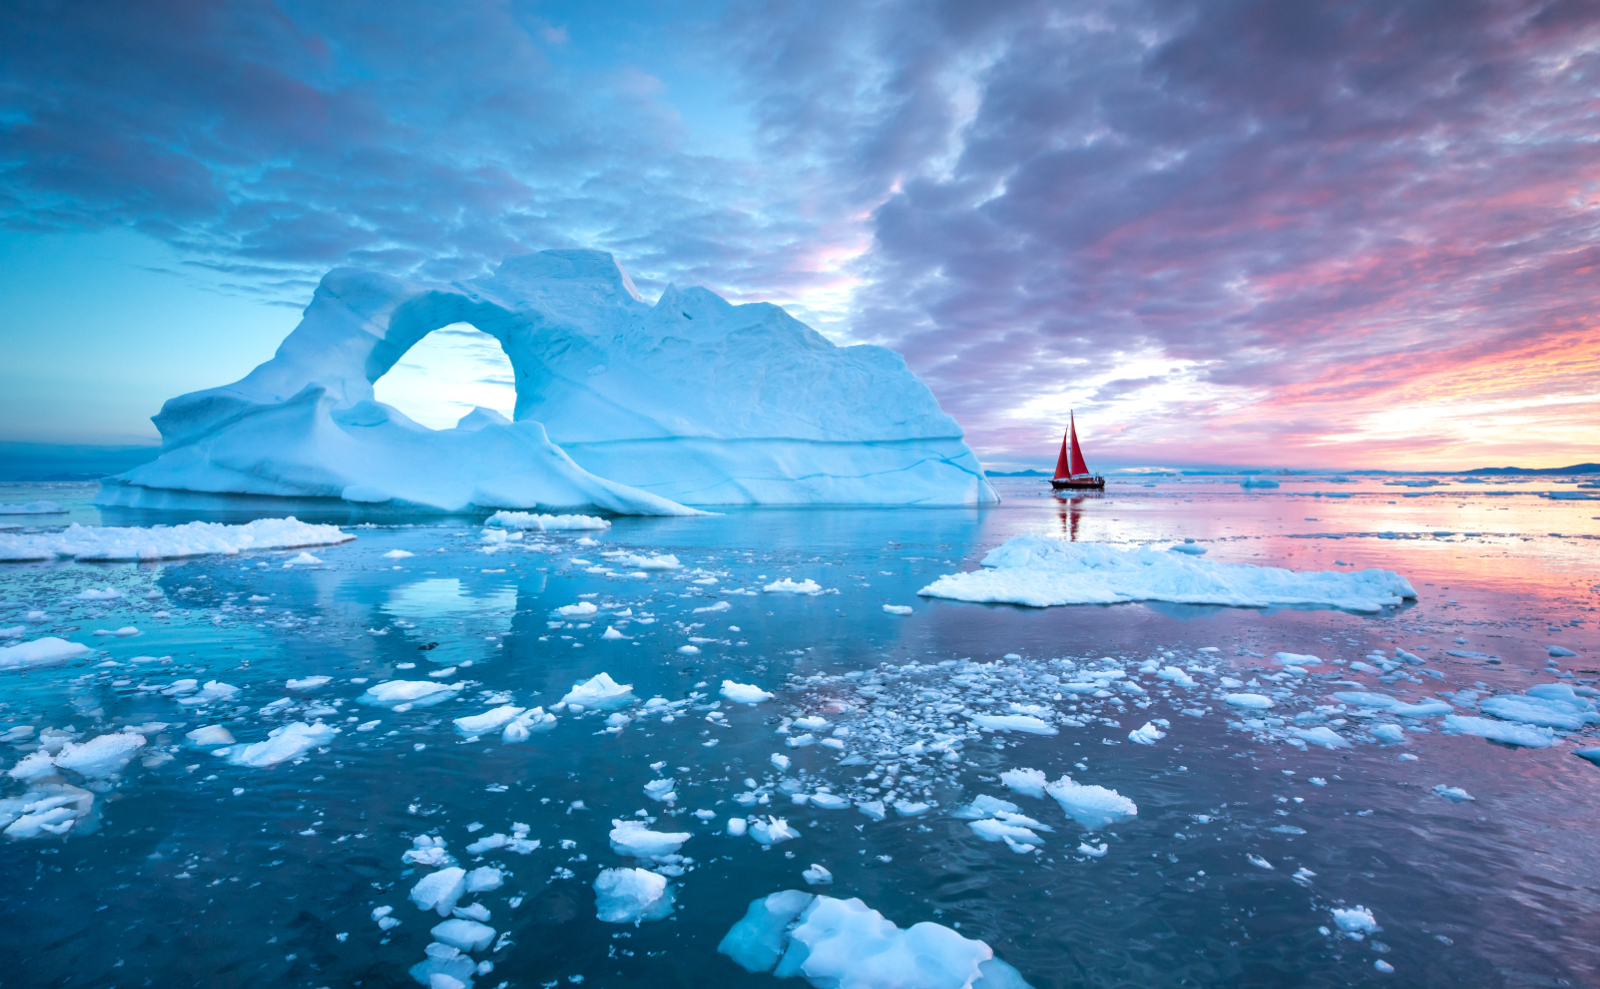 a red sailboat bloats next to an iceberg in the arctic